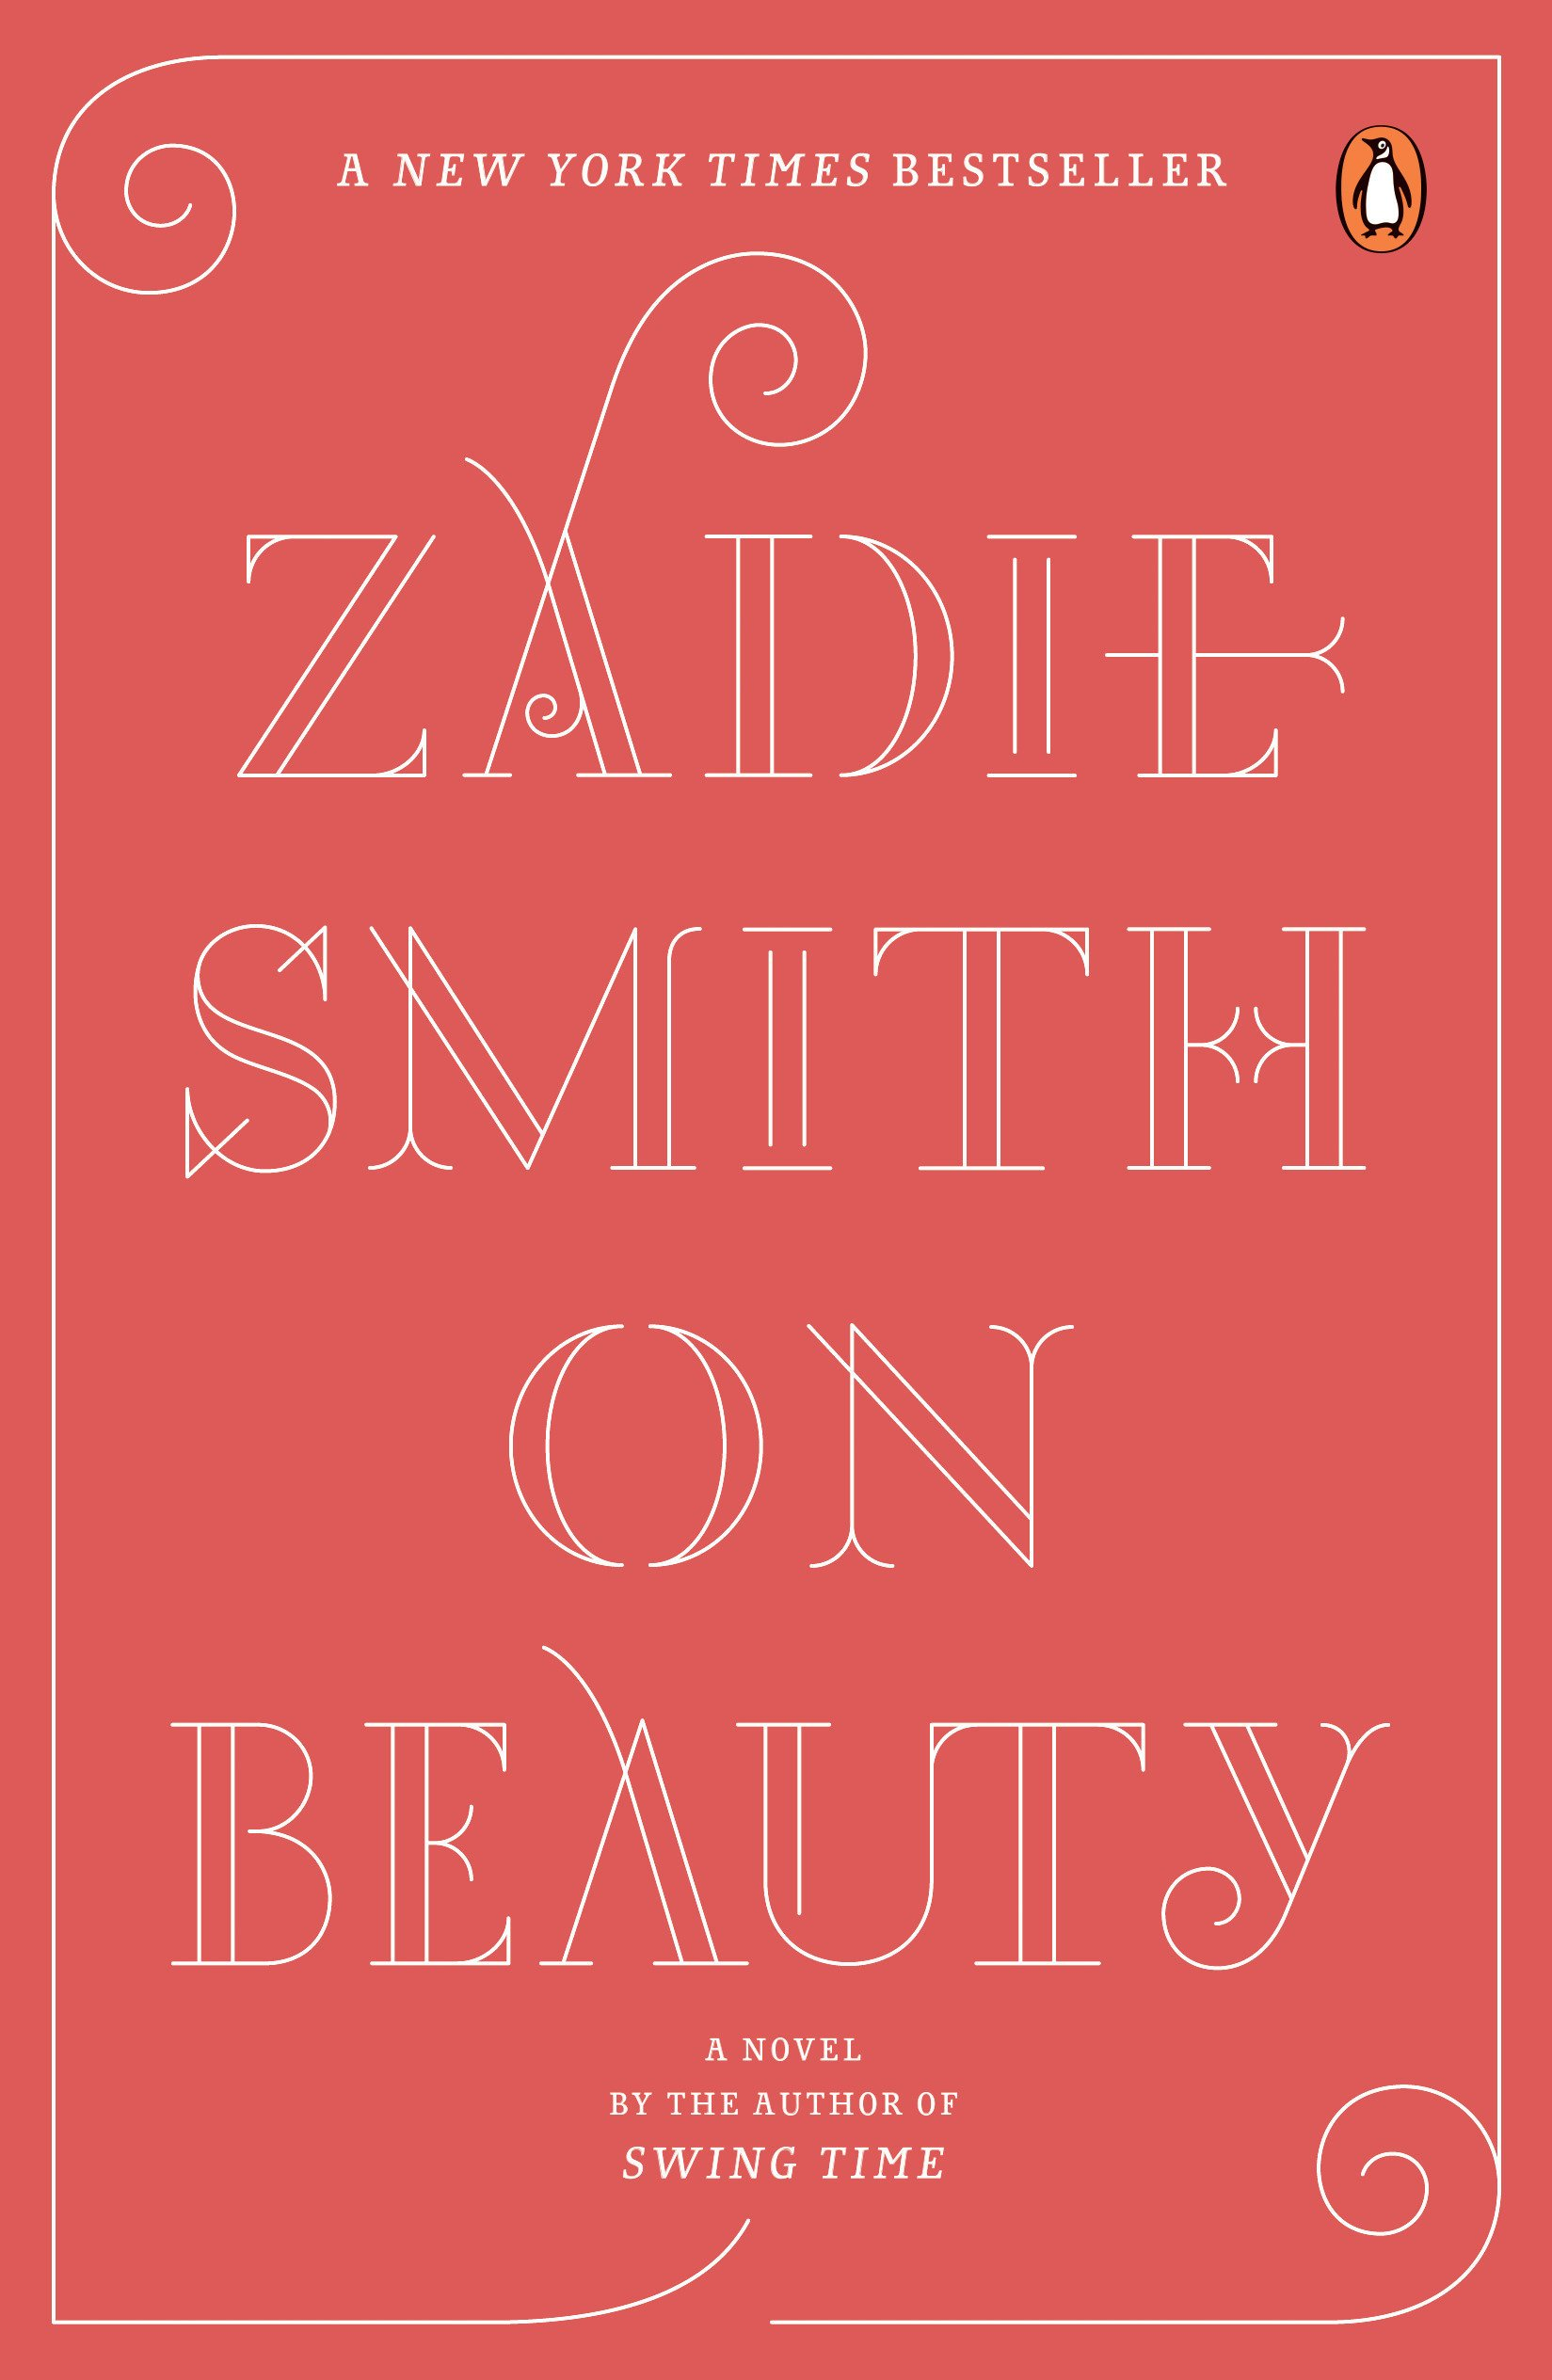 Amazon.com: On Beauty: A Novel (9780143037743): Smith, Zadie: Books